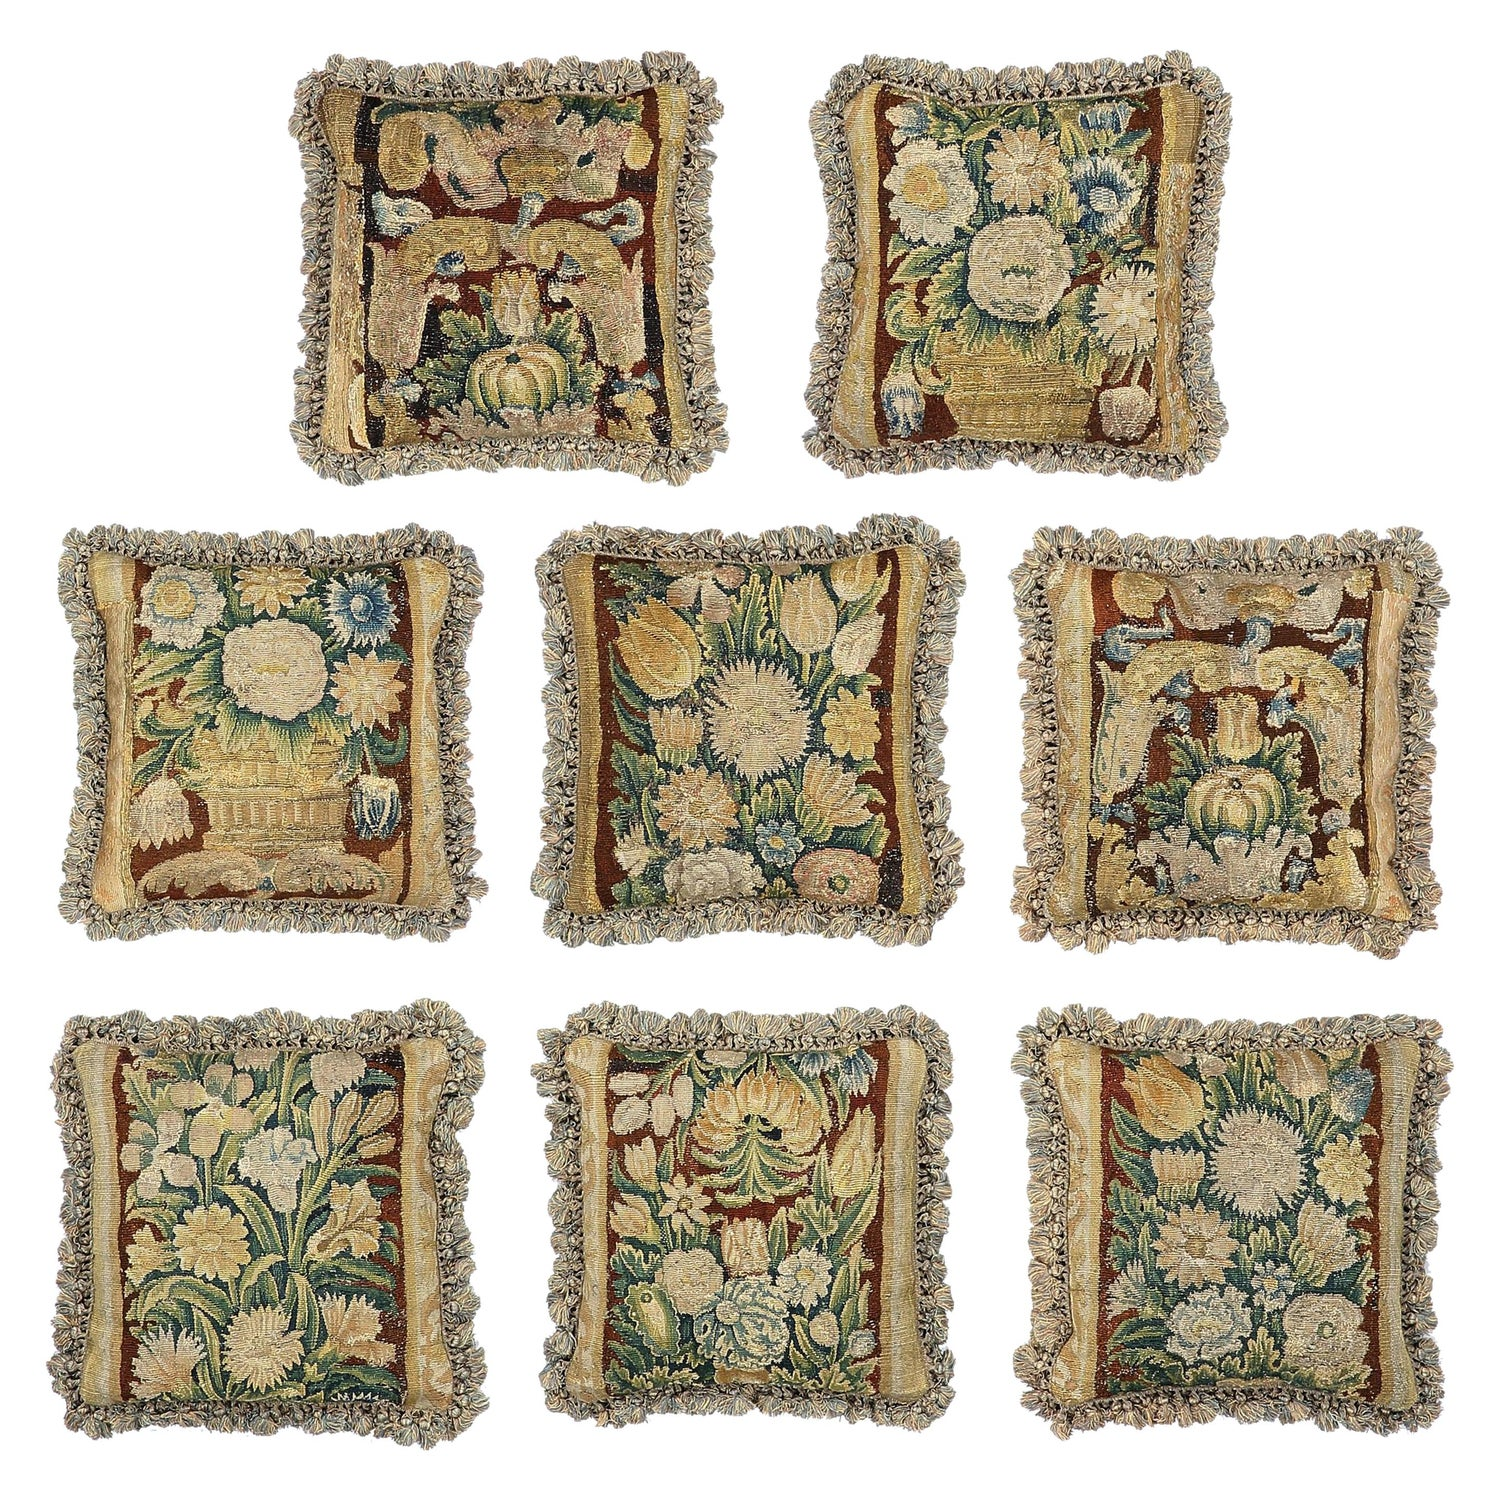 Set of Eight Tapestry Pillows Cushions Mid-17th Century Flemish Baroque Verdure